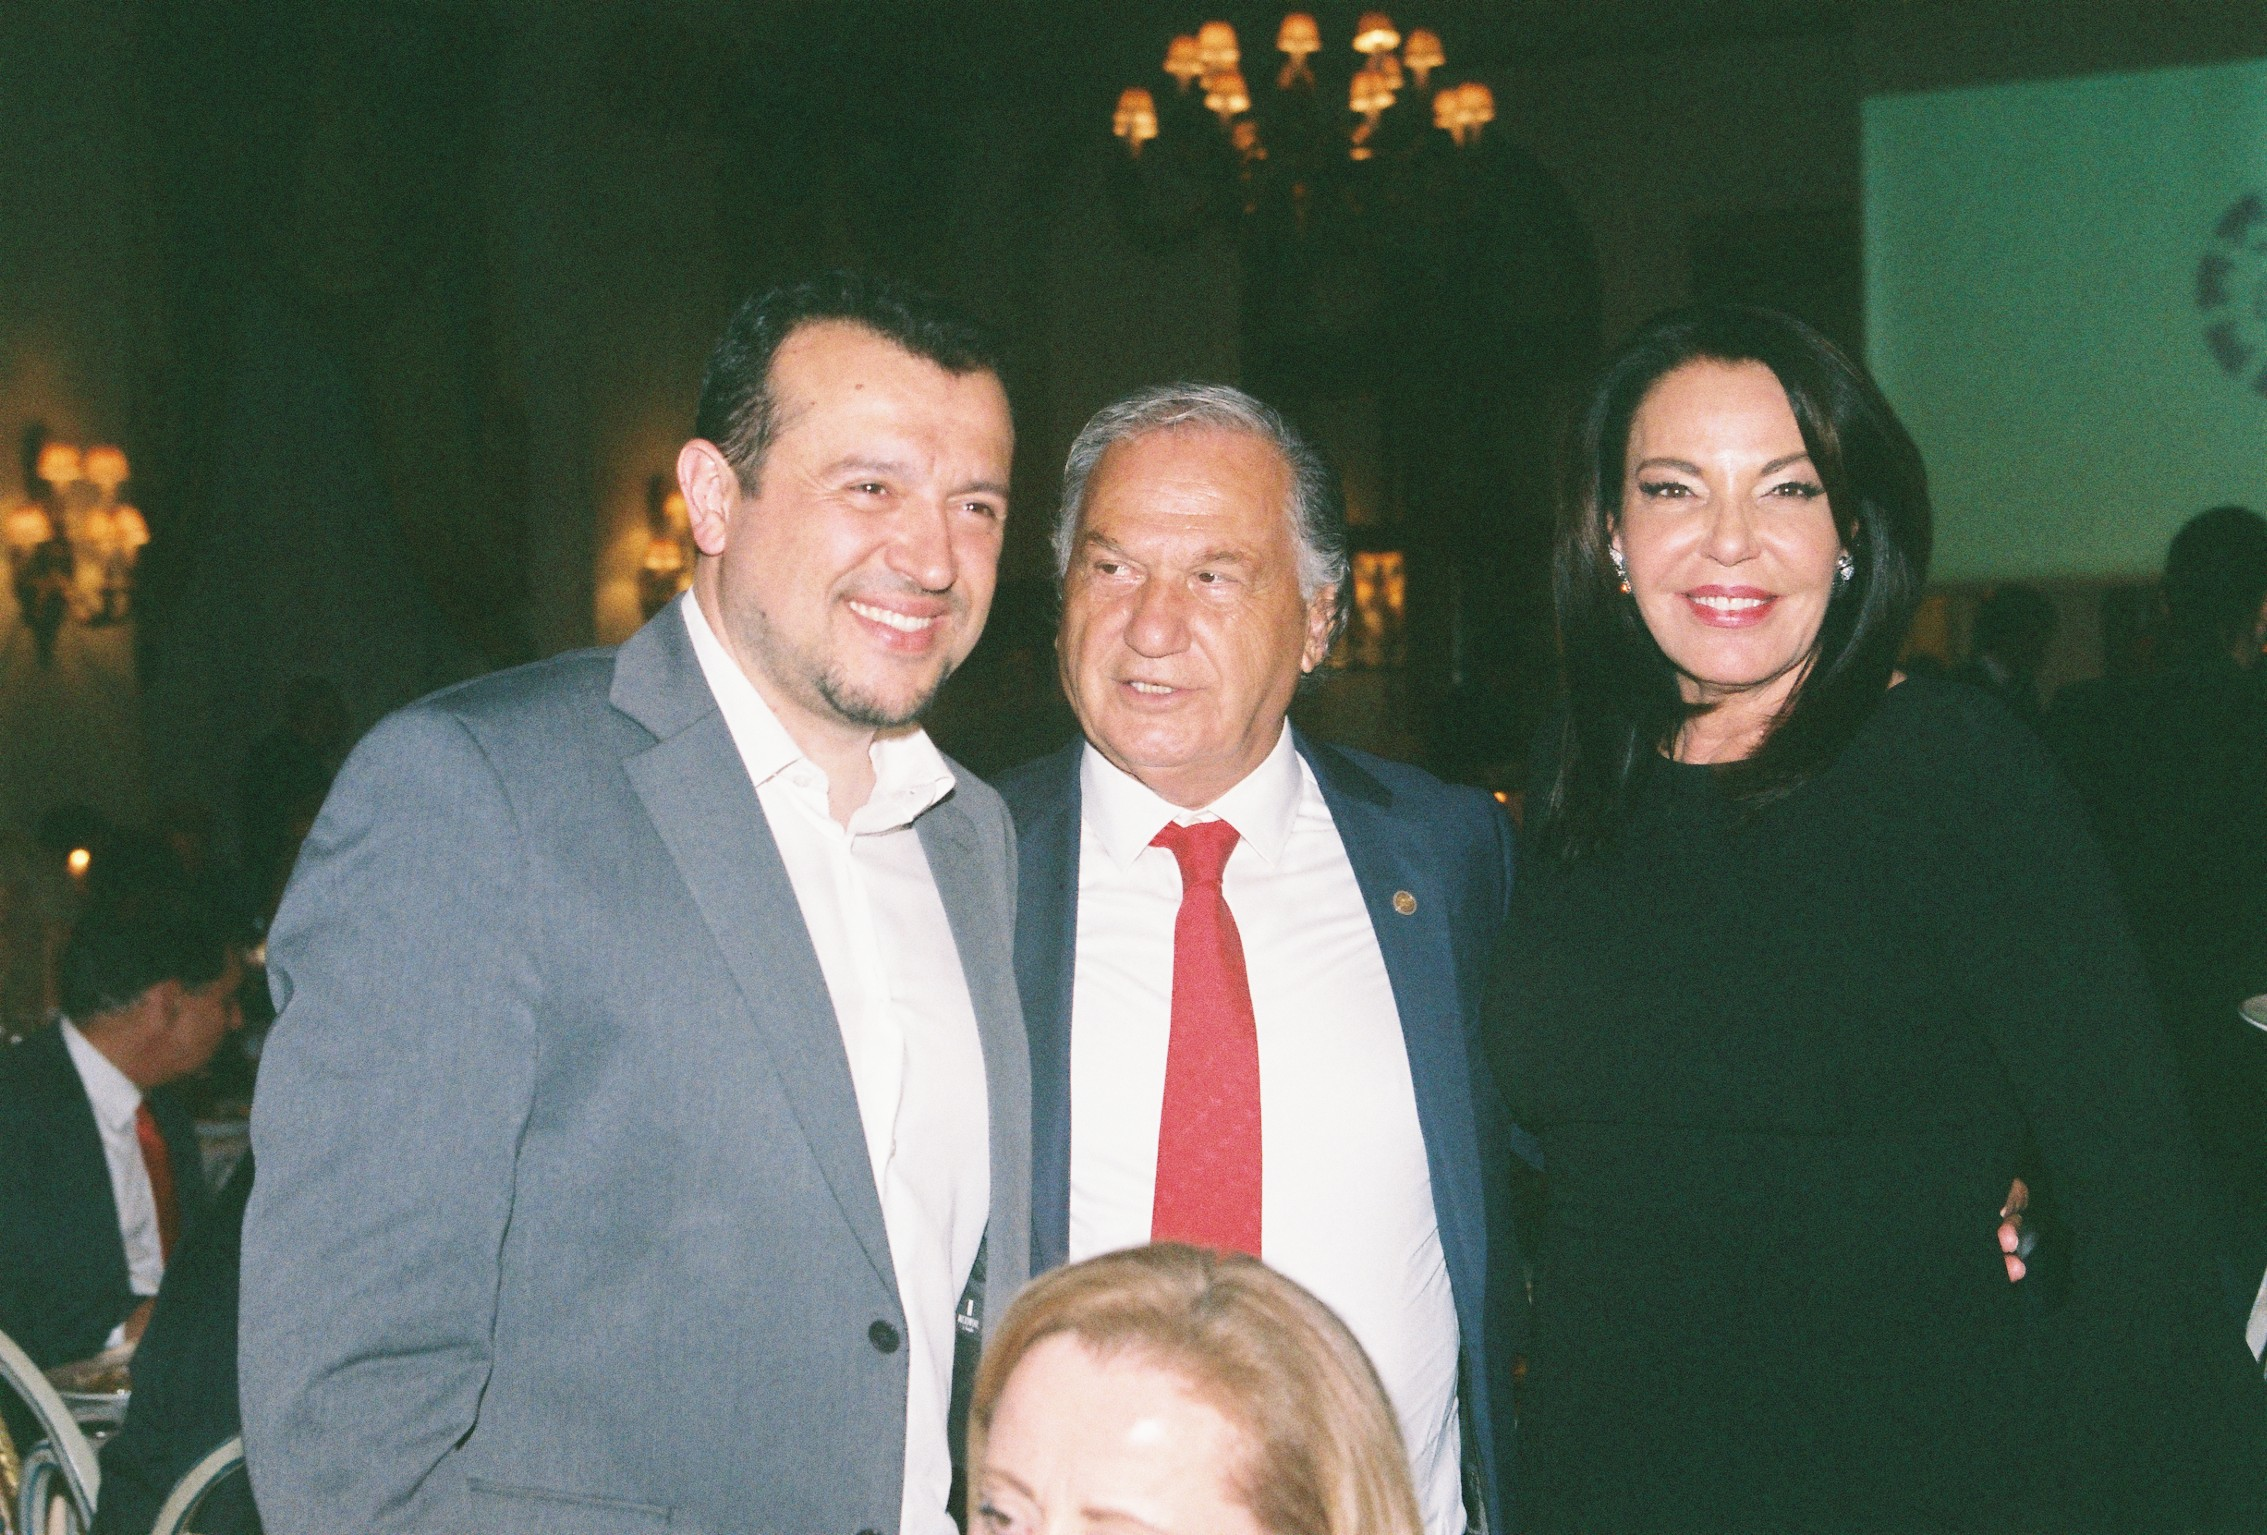 Nikos Pappas, Minister of Digital Policy, Telecommunications and Media; George Mermelas; Katerina P. Panagopoulos